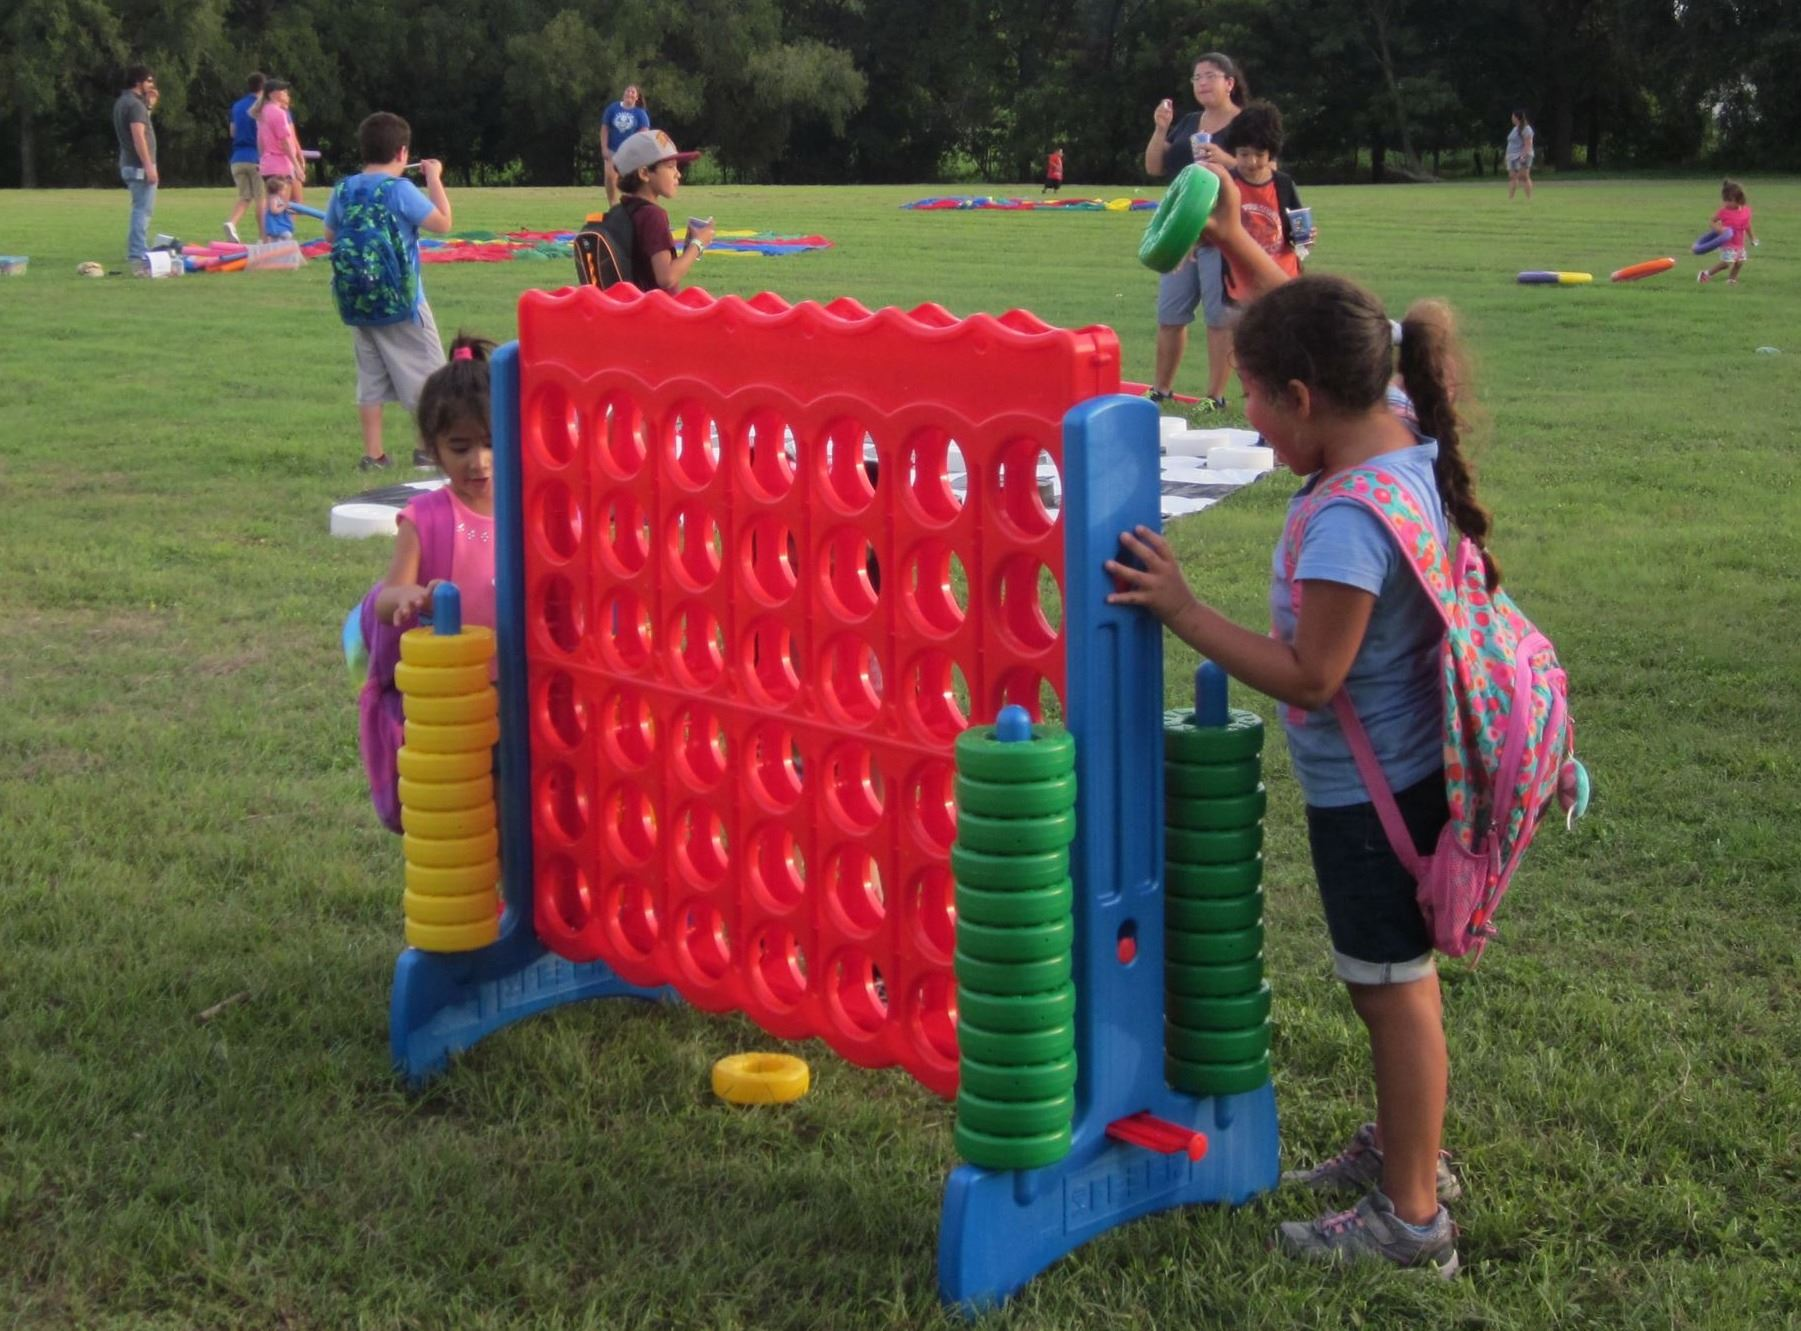 Children playing giant Connect 4 game at a park with families playing in the background